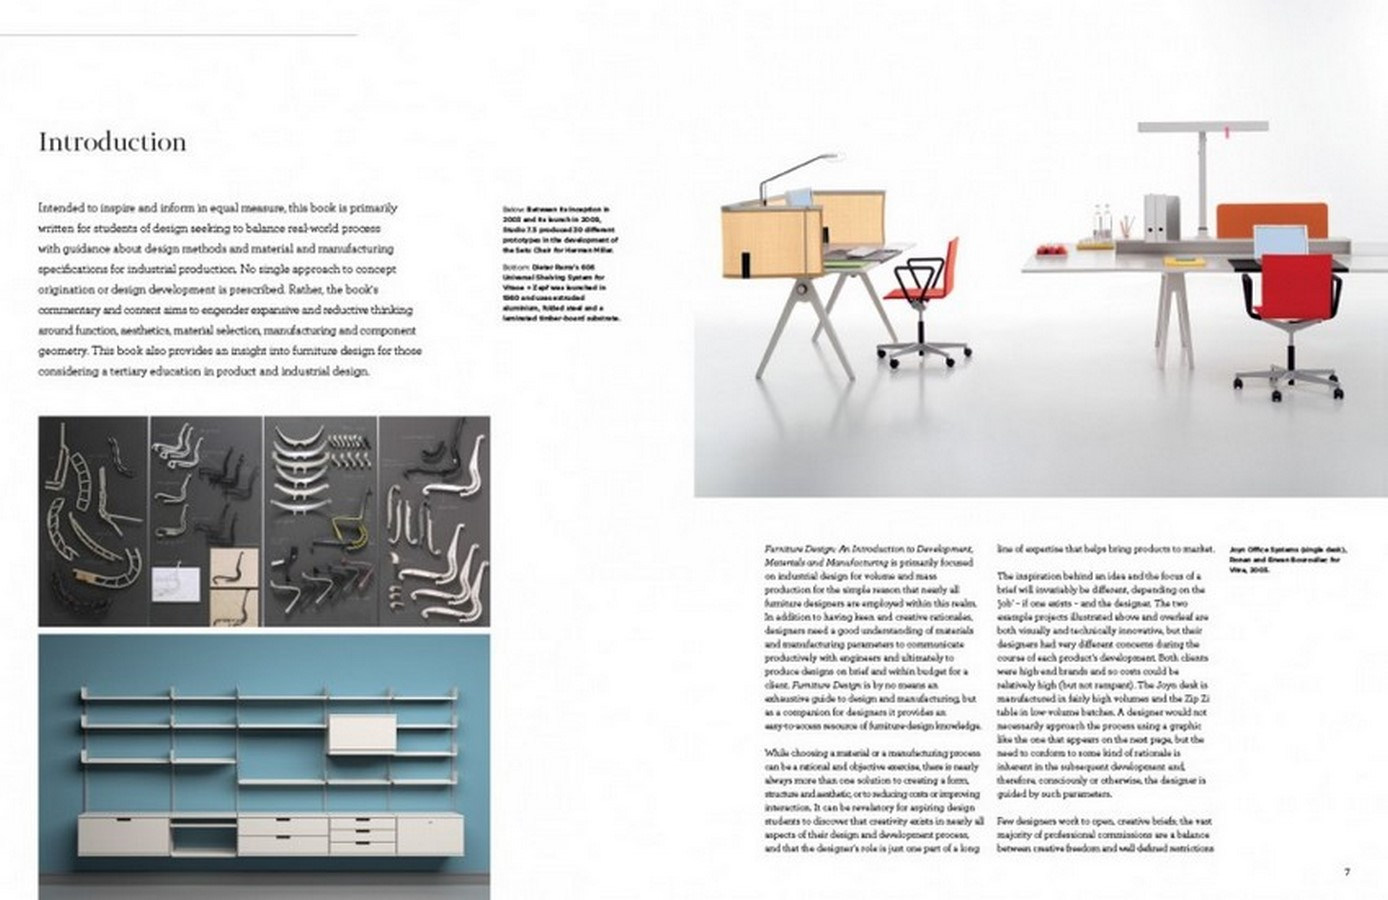 10 Books related to Furniture Design everyone should read Sheet6